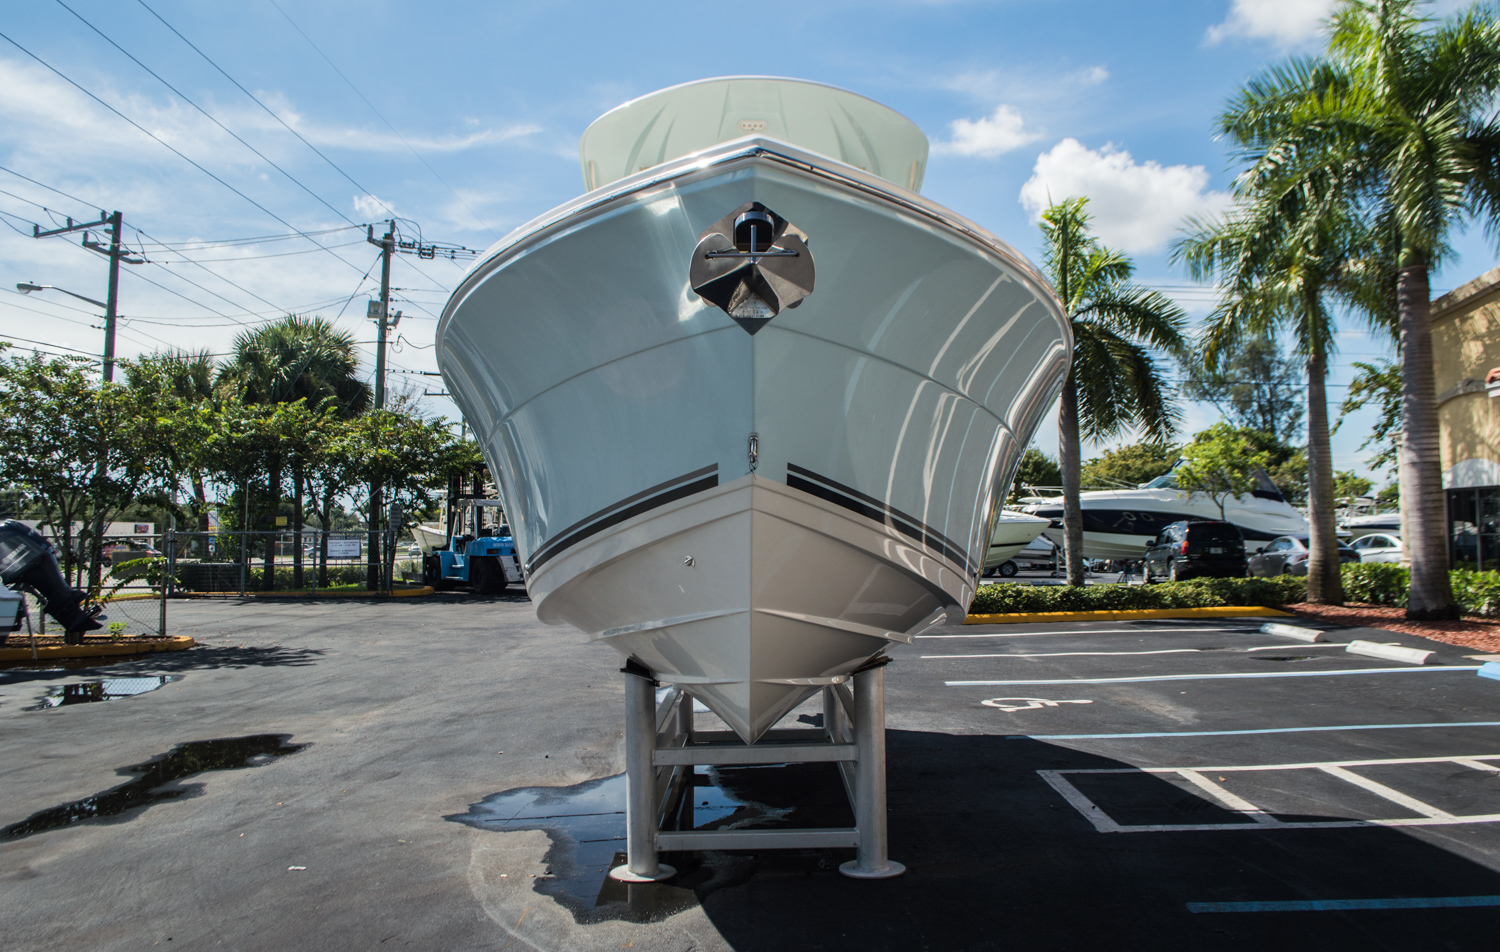 Thumbnail 2 for New 2016 Cobia 237 Center Console boat for sale in Vero Beach, FL